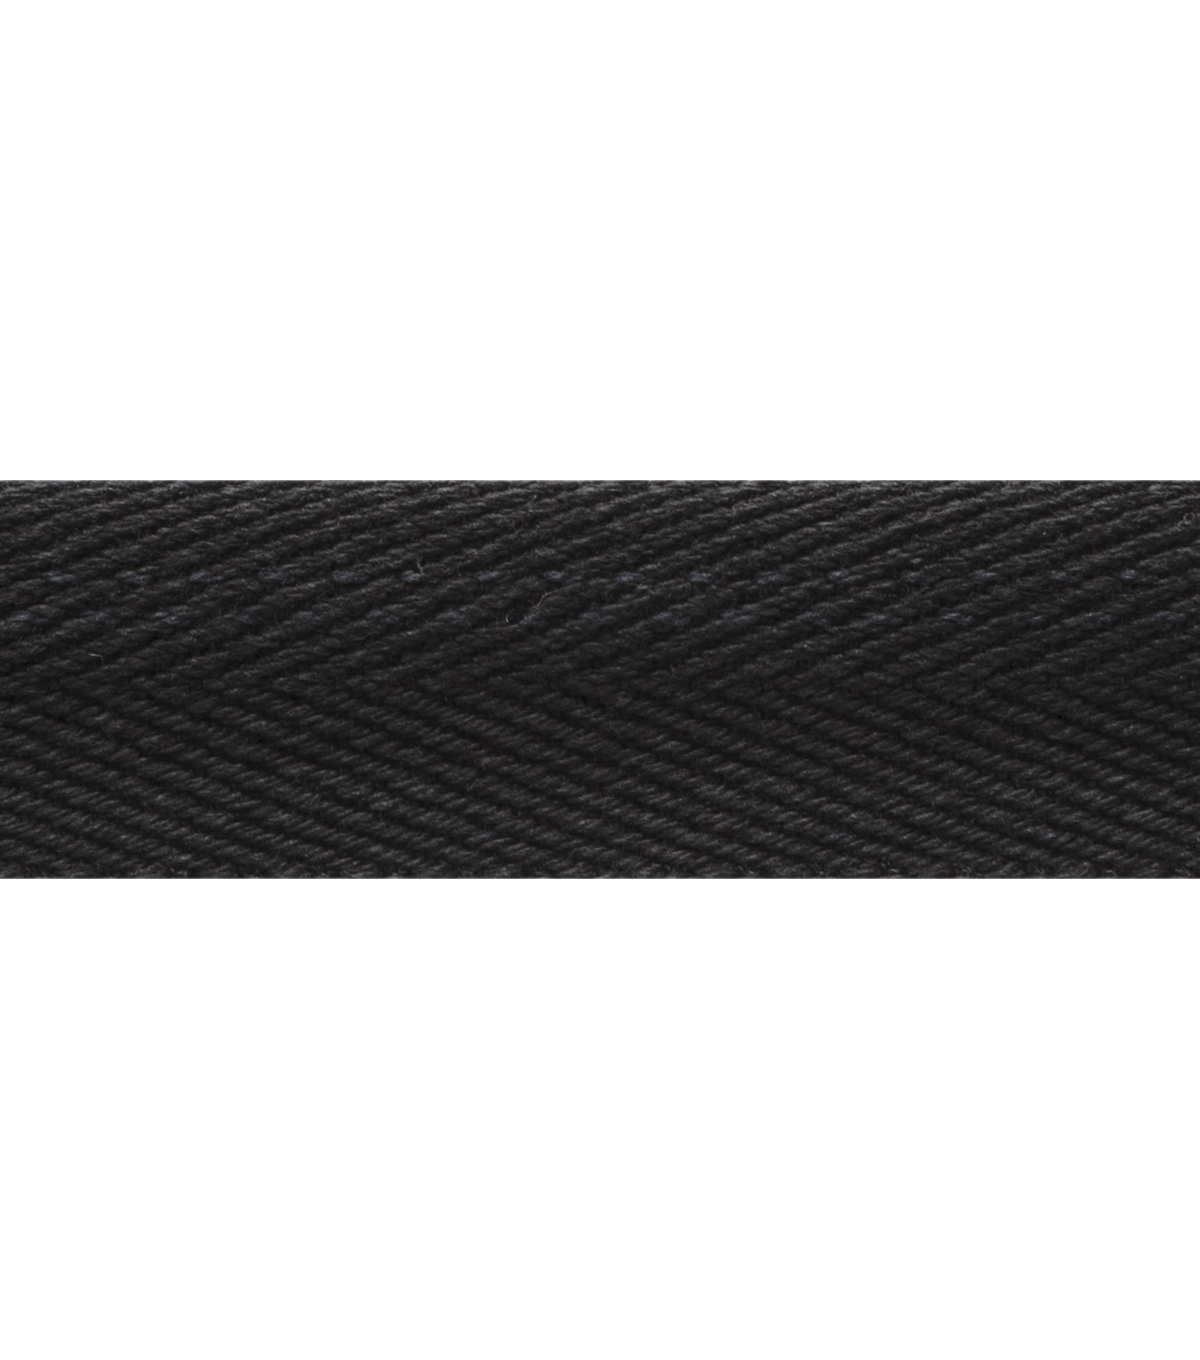 1\u0022 Twill Tape Black Apparel Trim